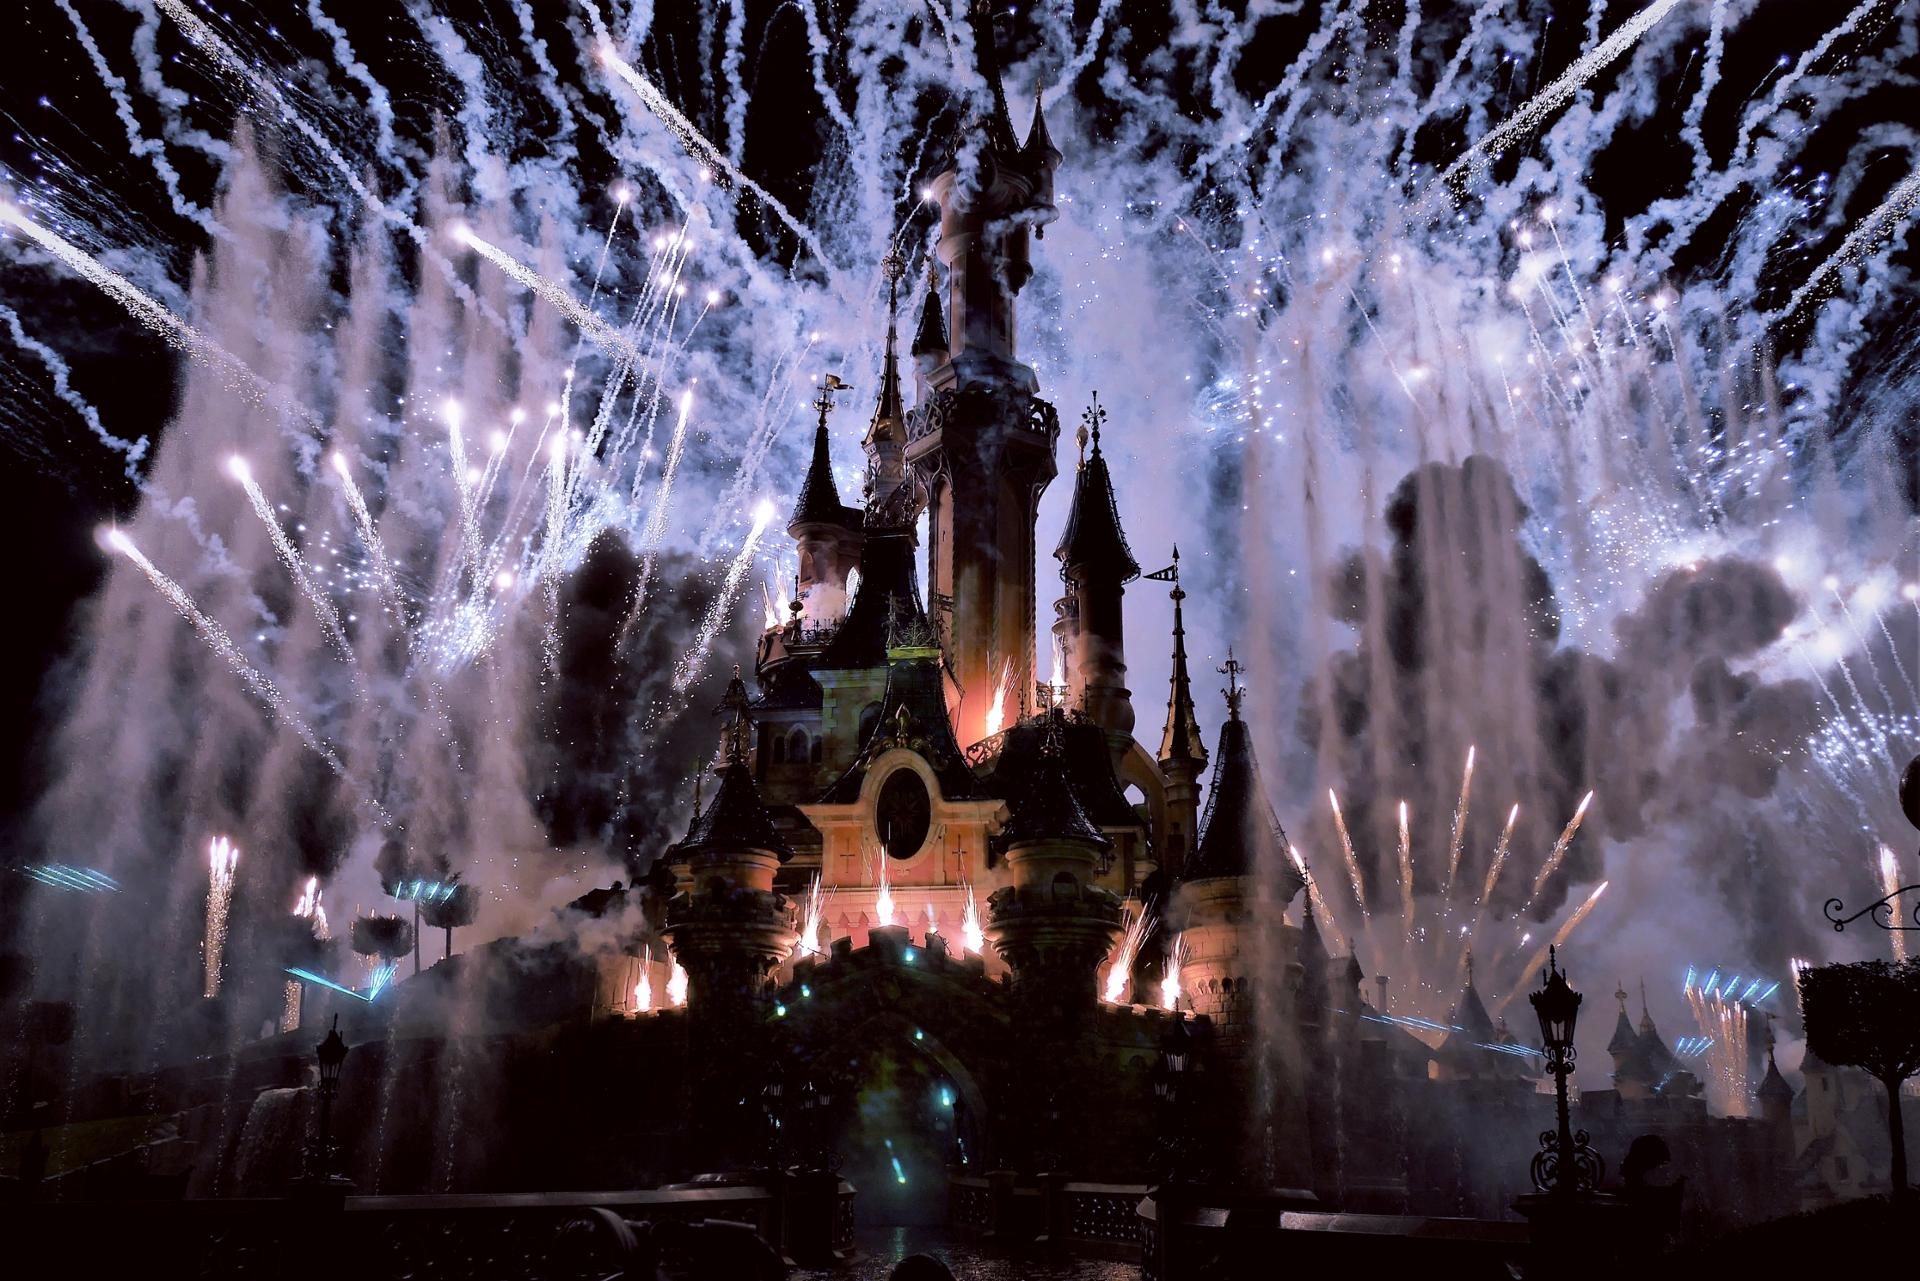 When you wish upon a star ...